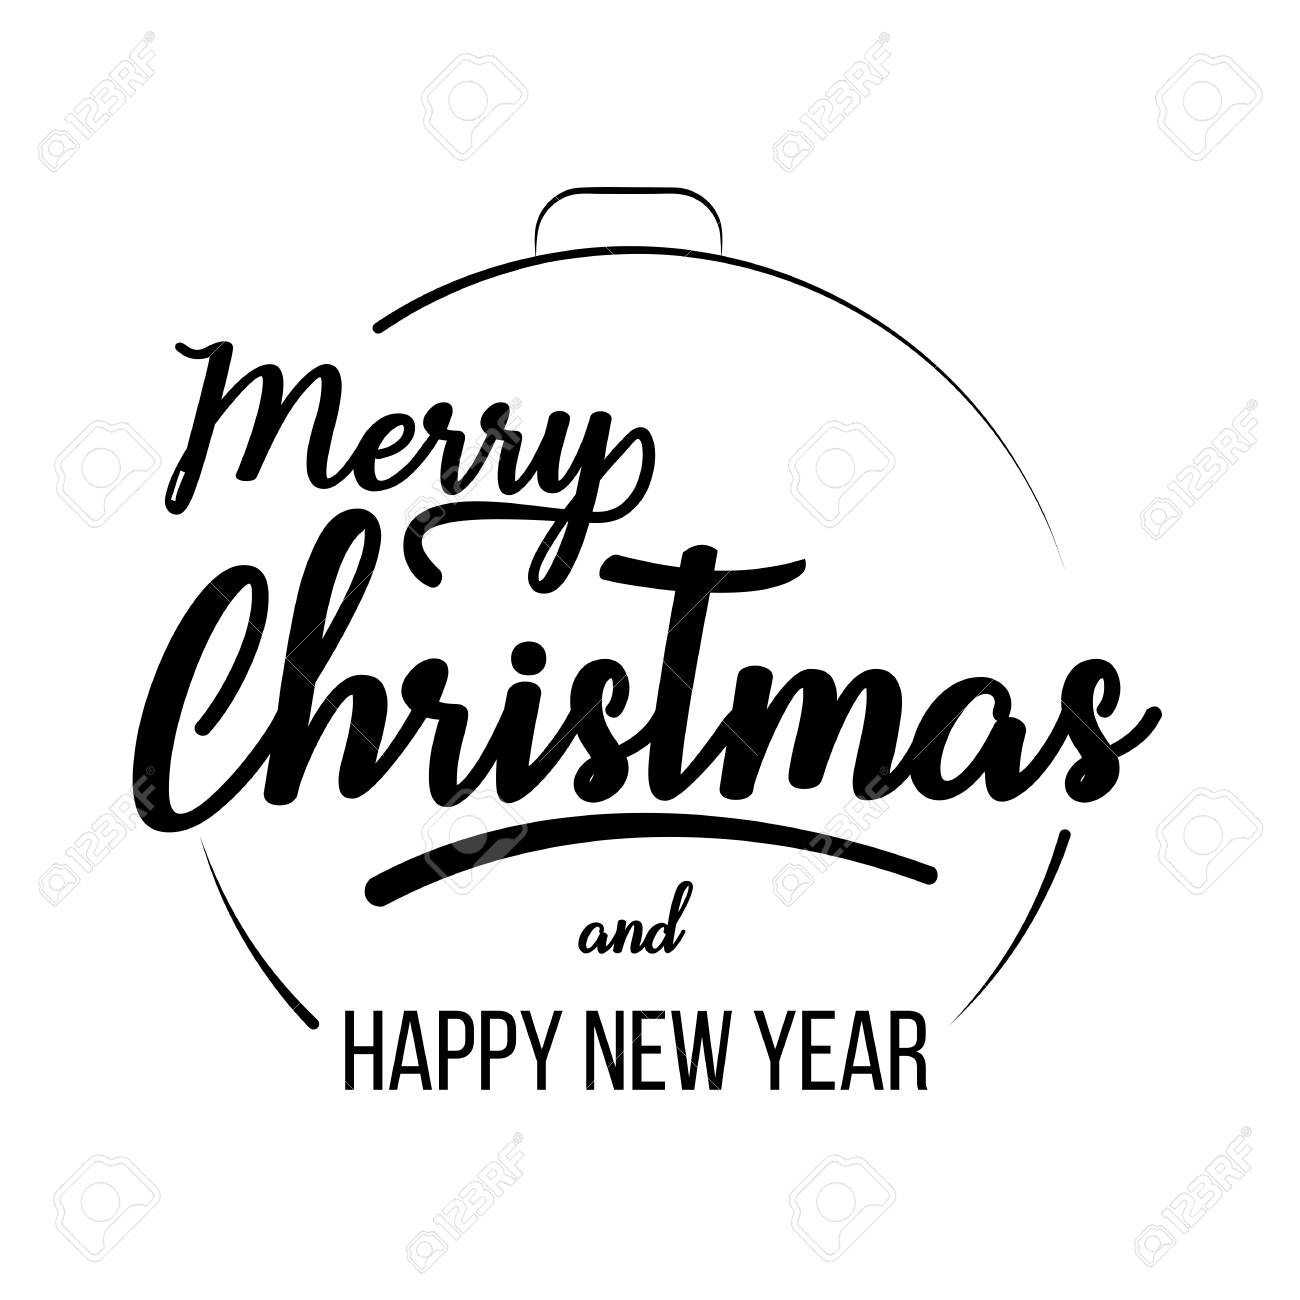 2e62a92a0f009 Merry Christmas and Happy New Year lettering template. Monochrome greeting  card or invitation. Typography